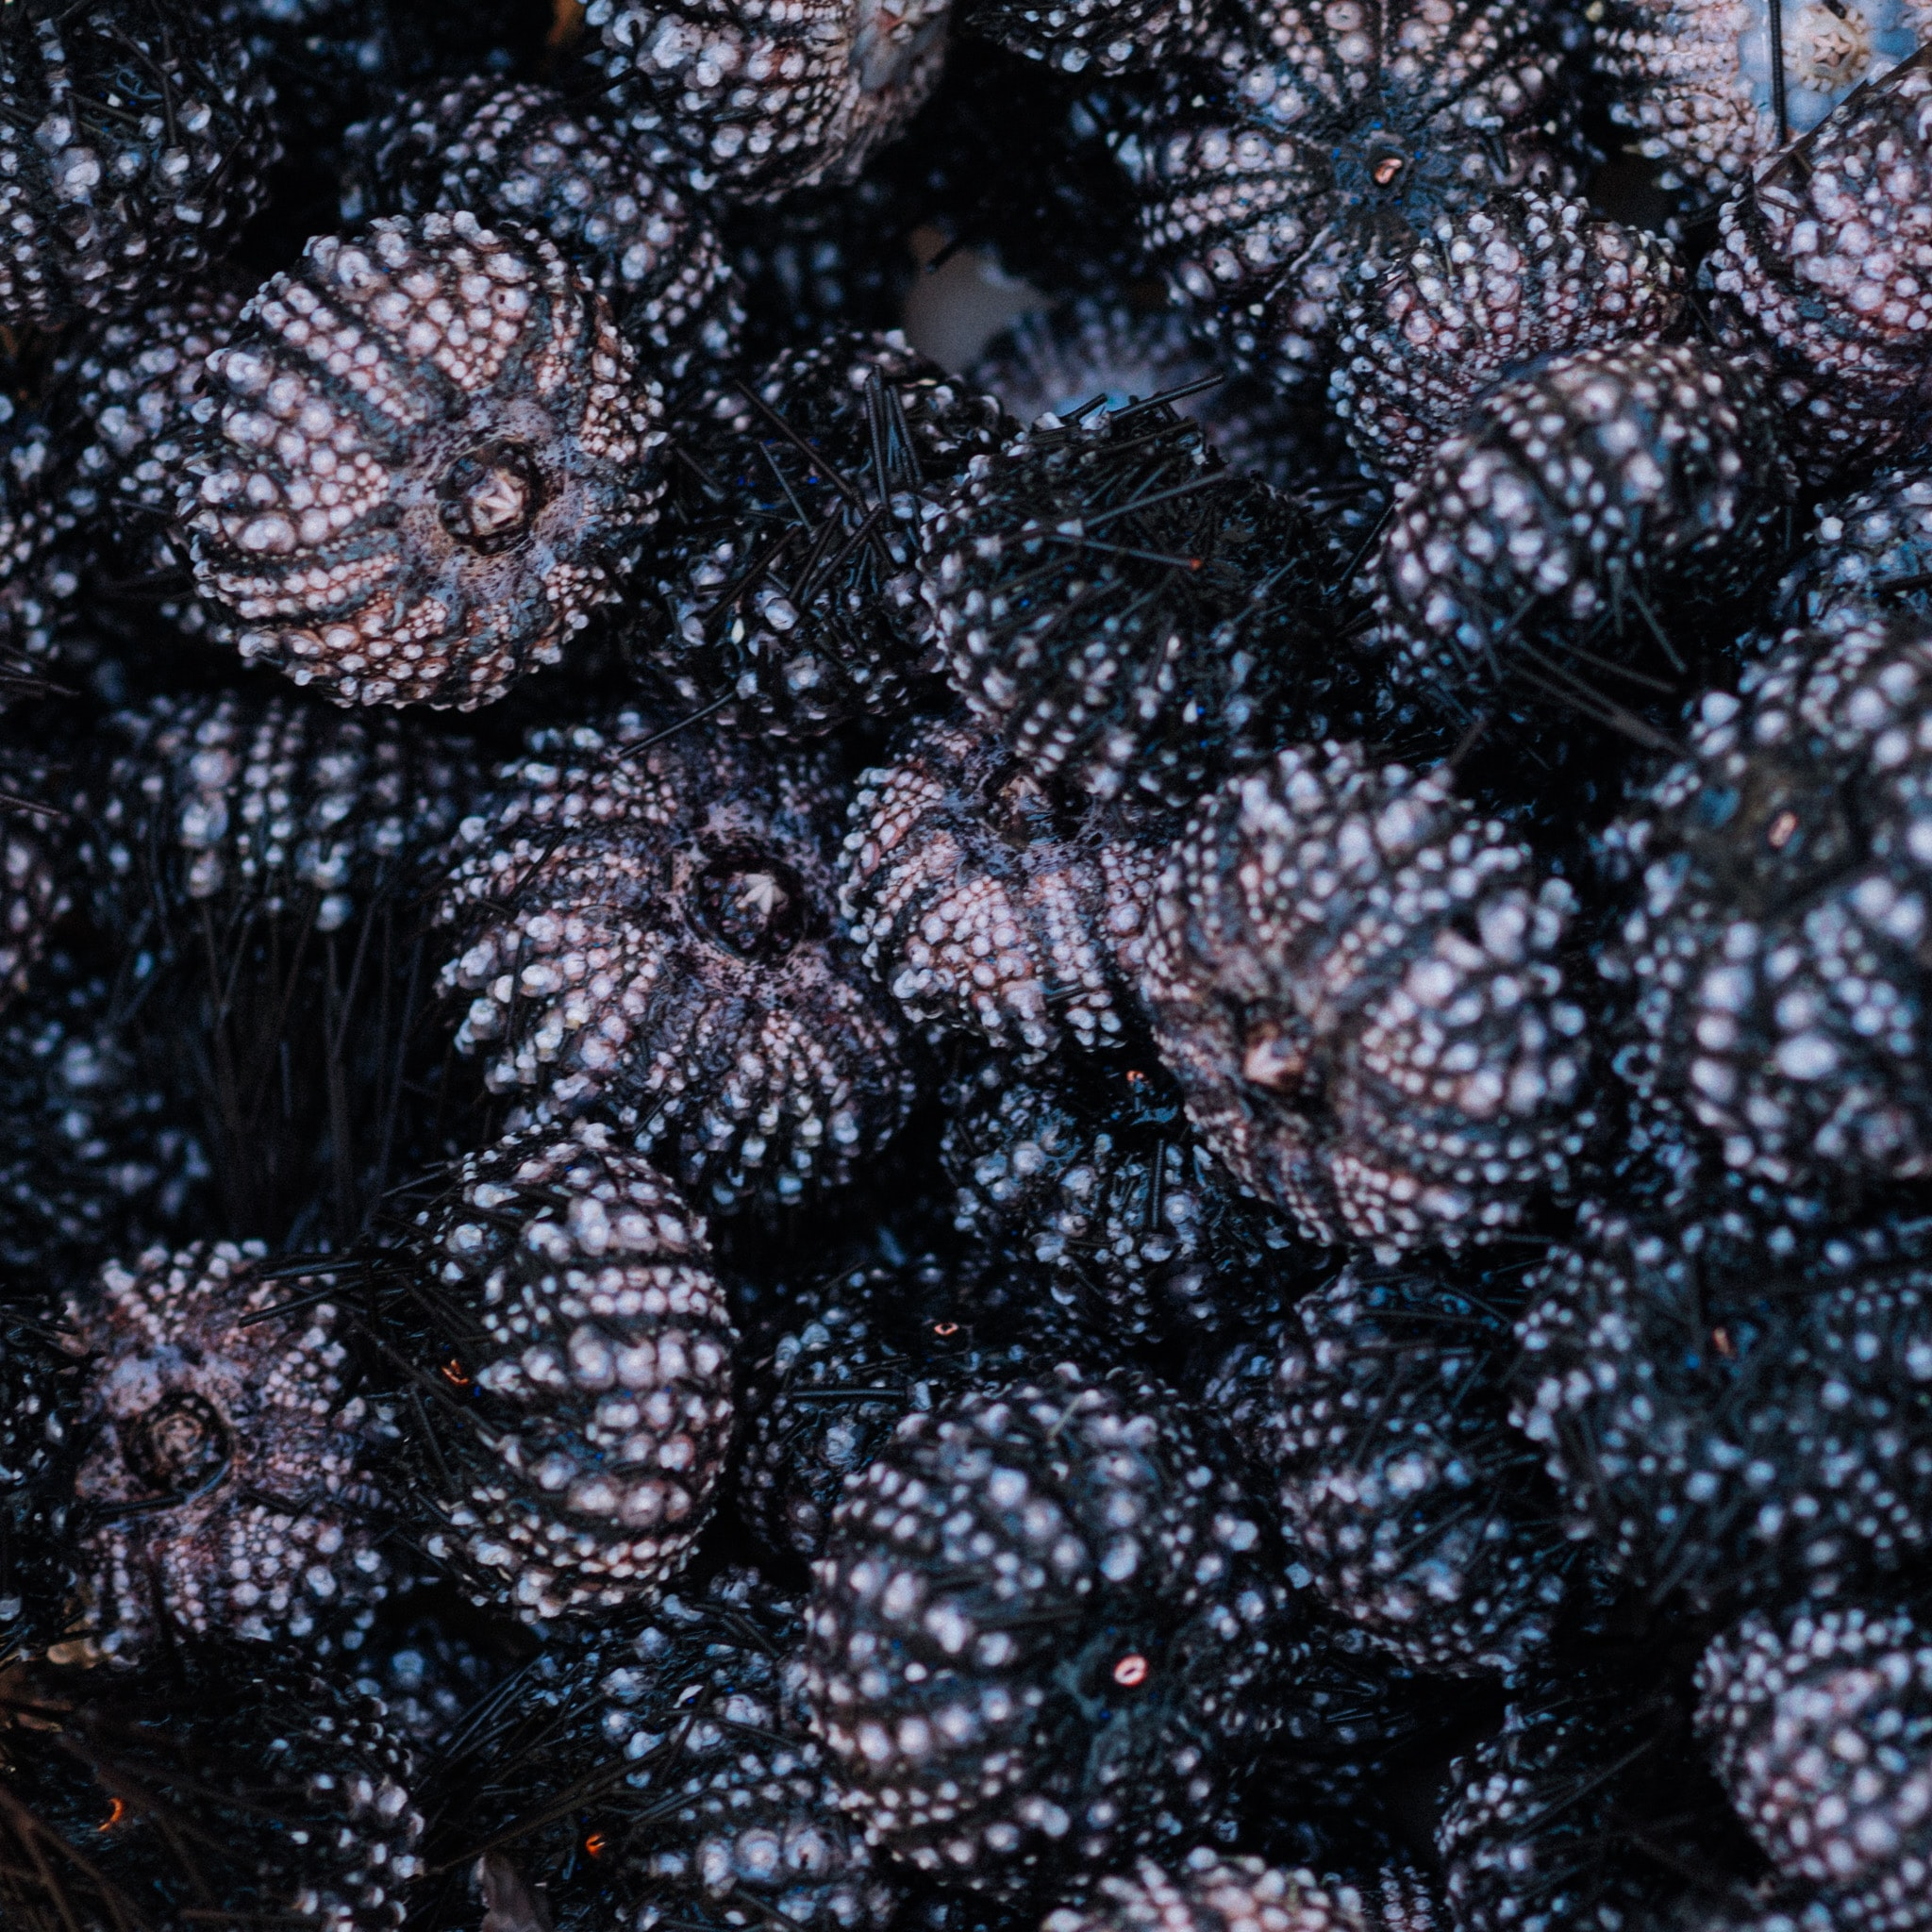 bunch of black sea urchins